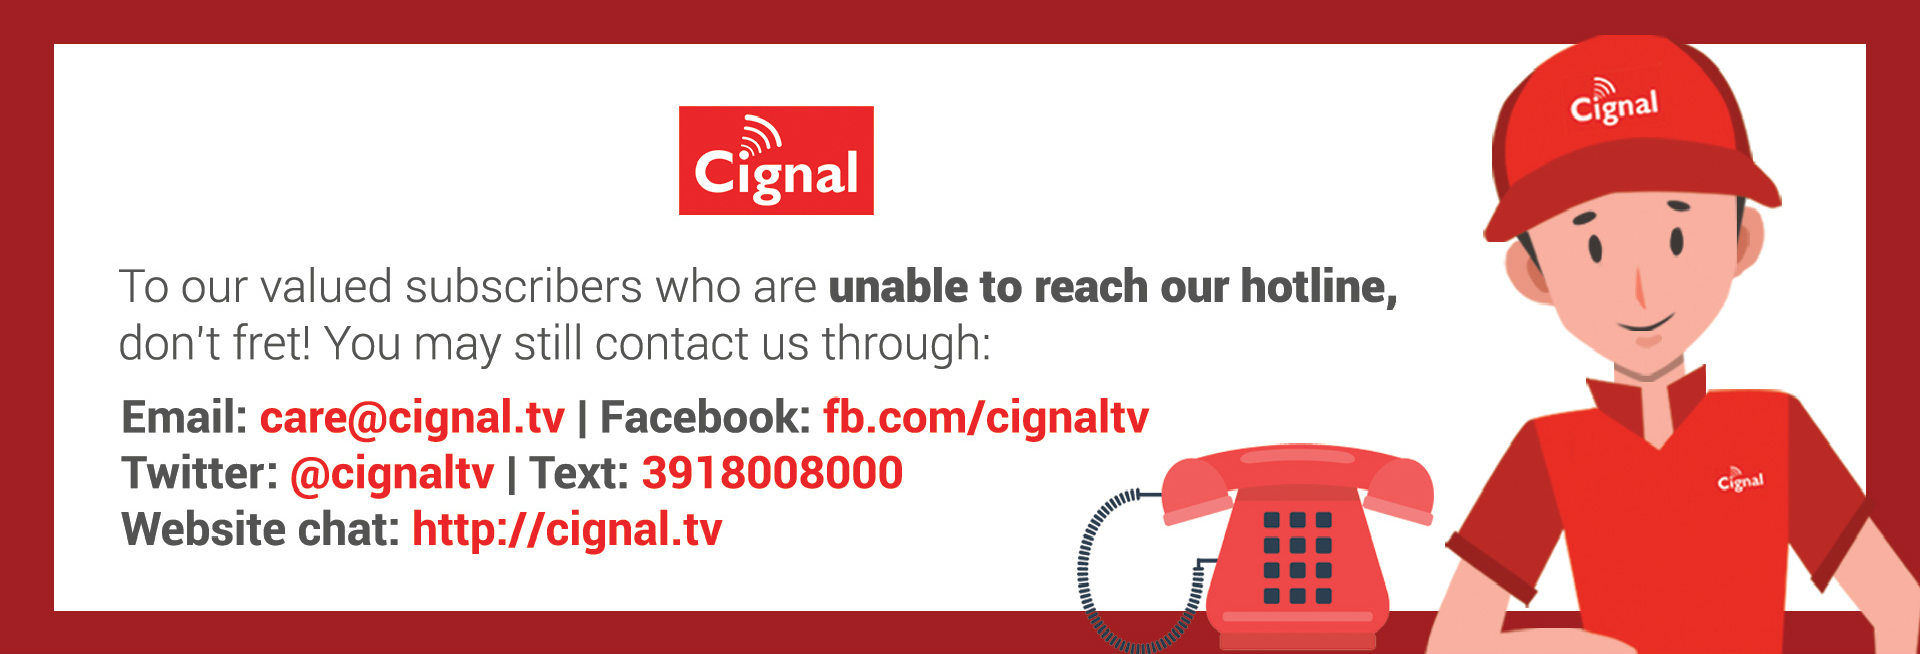 Cignal Advisory Touchpoints